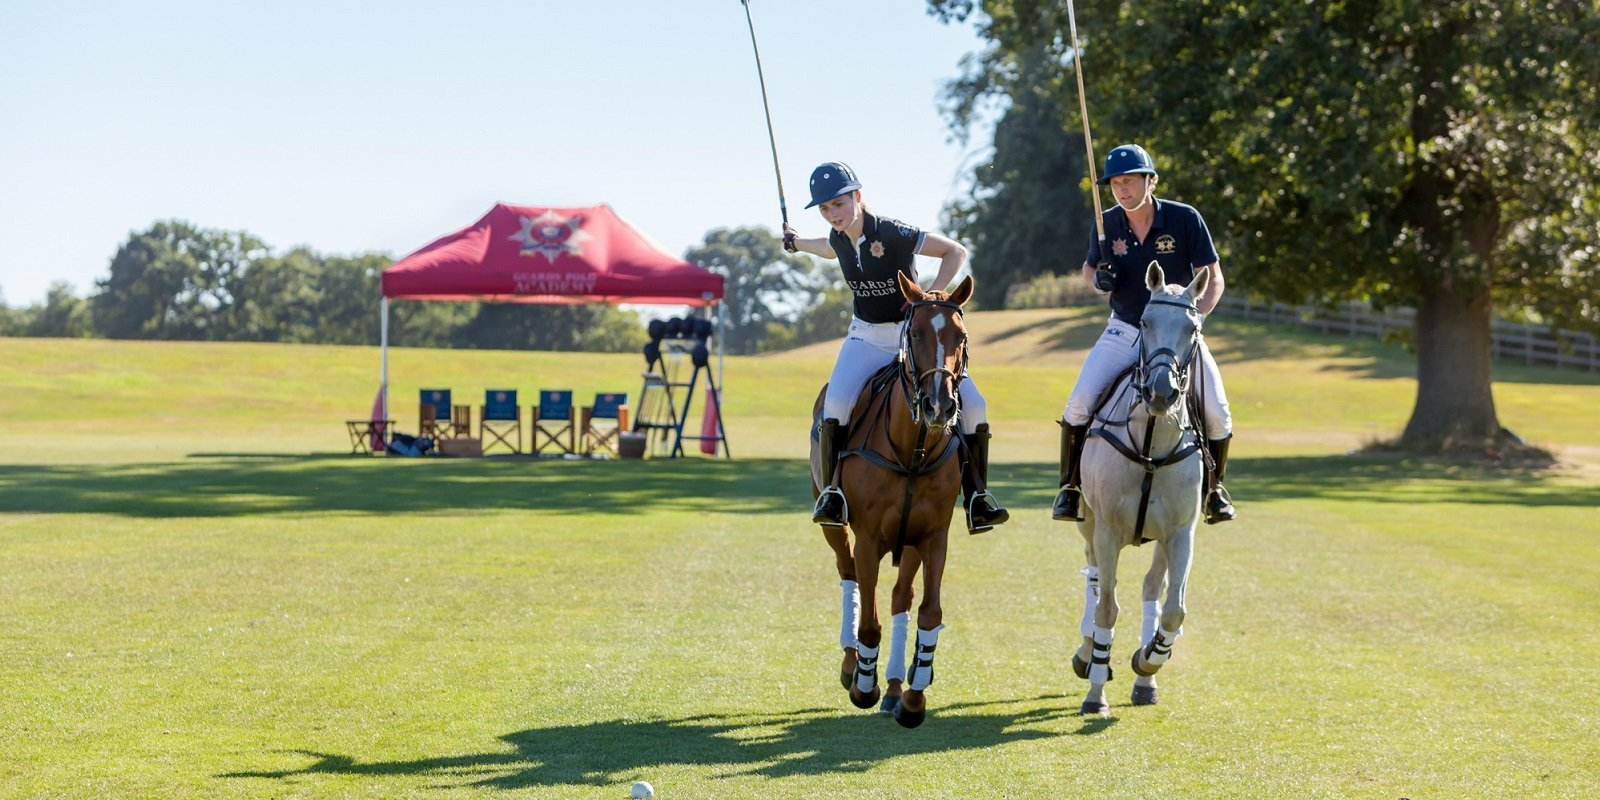 guards-polo-academy-at-coworth-park-polo-lesson